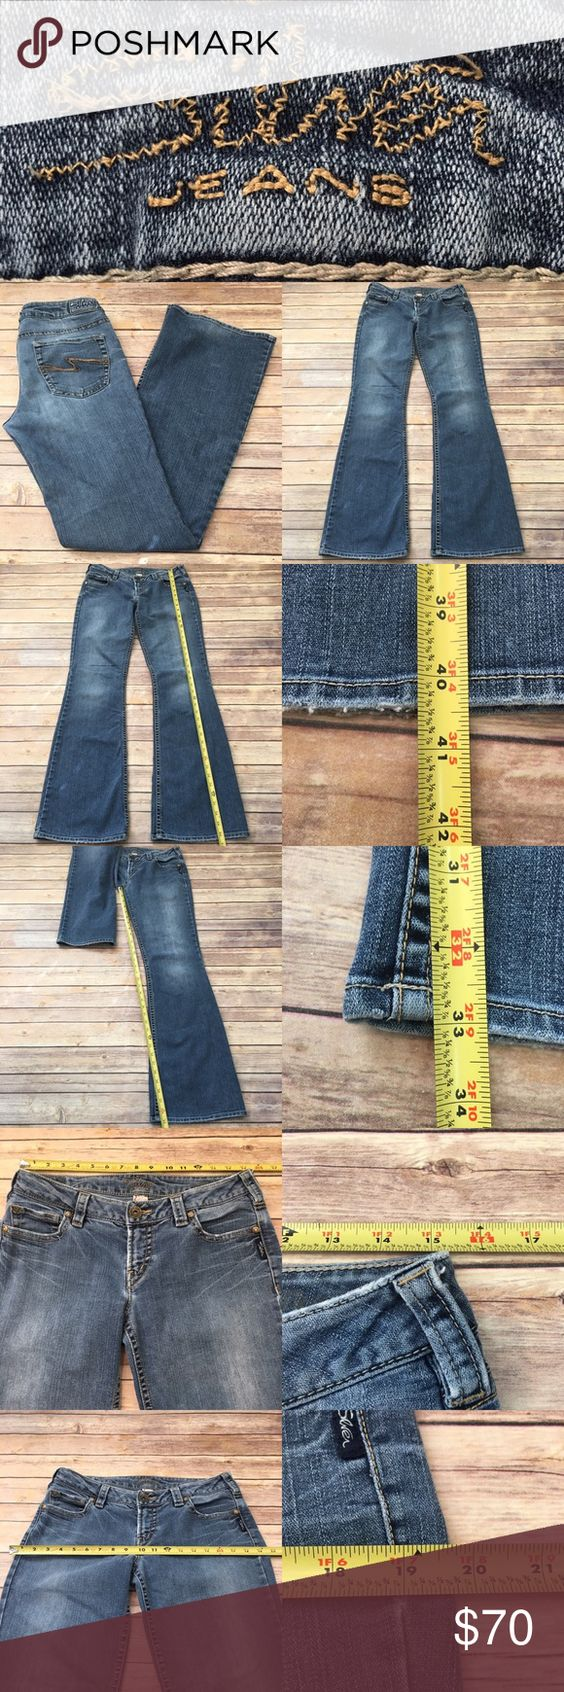 🏝Size 30 Long Silver Jeans Aiko Flare Denim Jeans